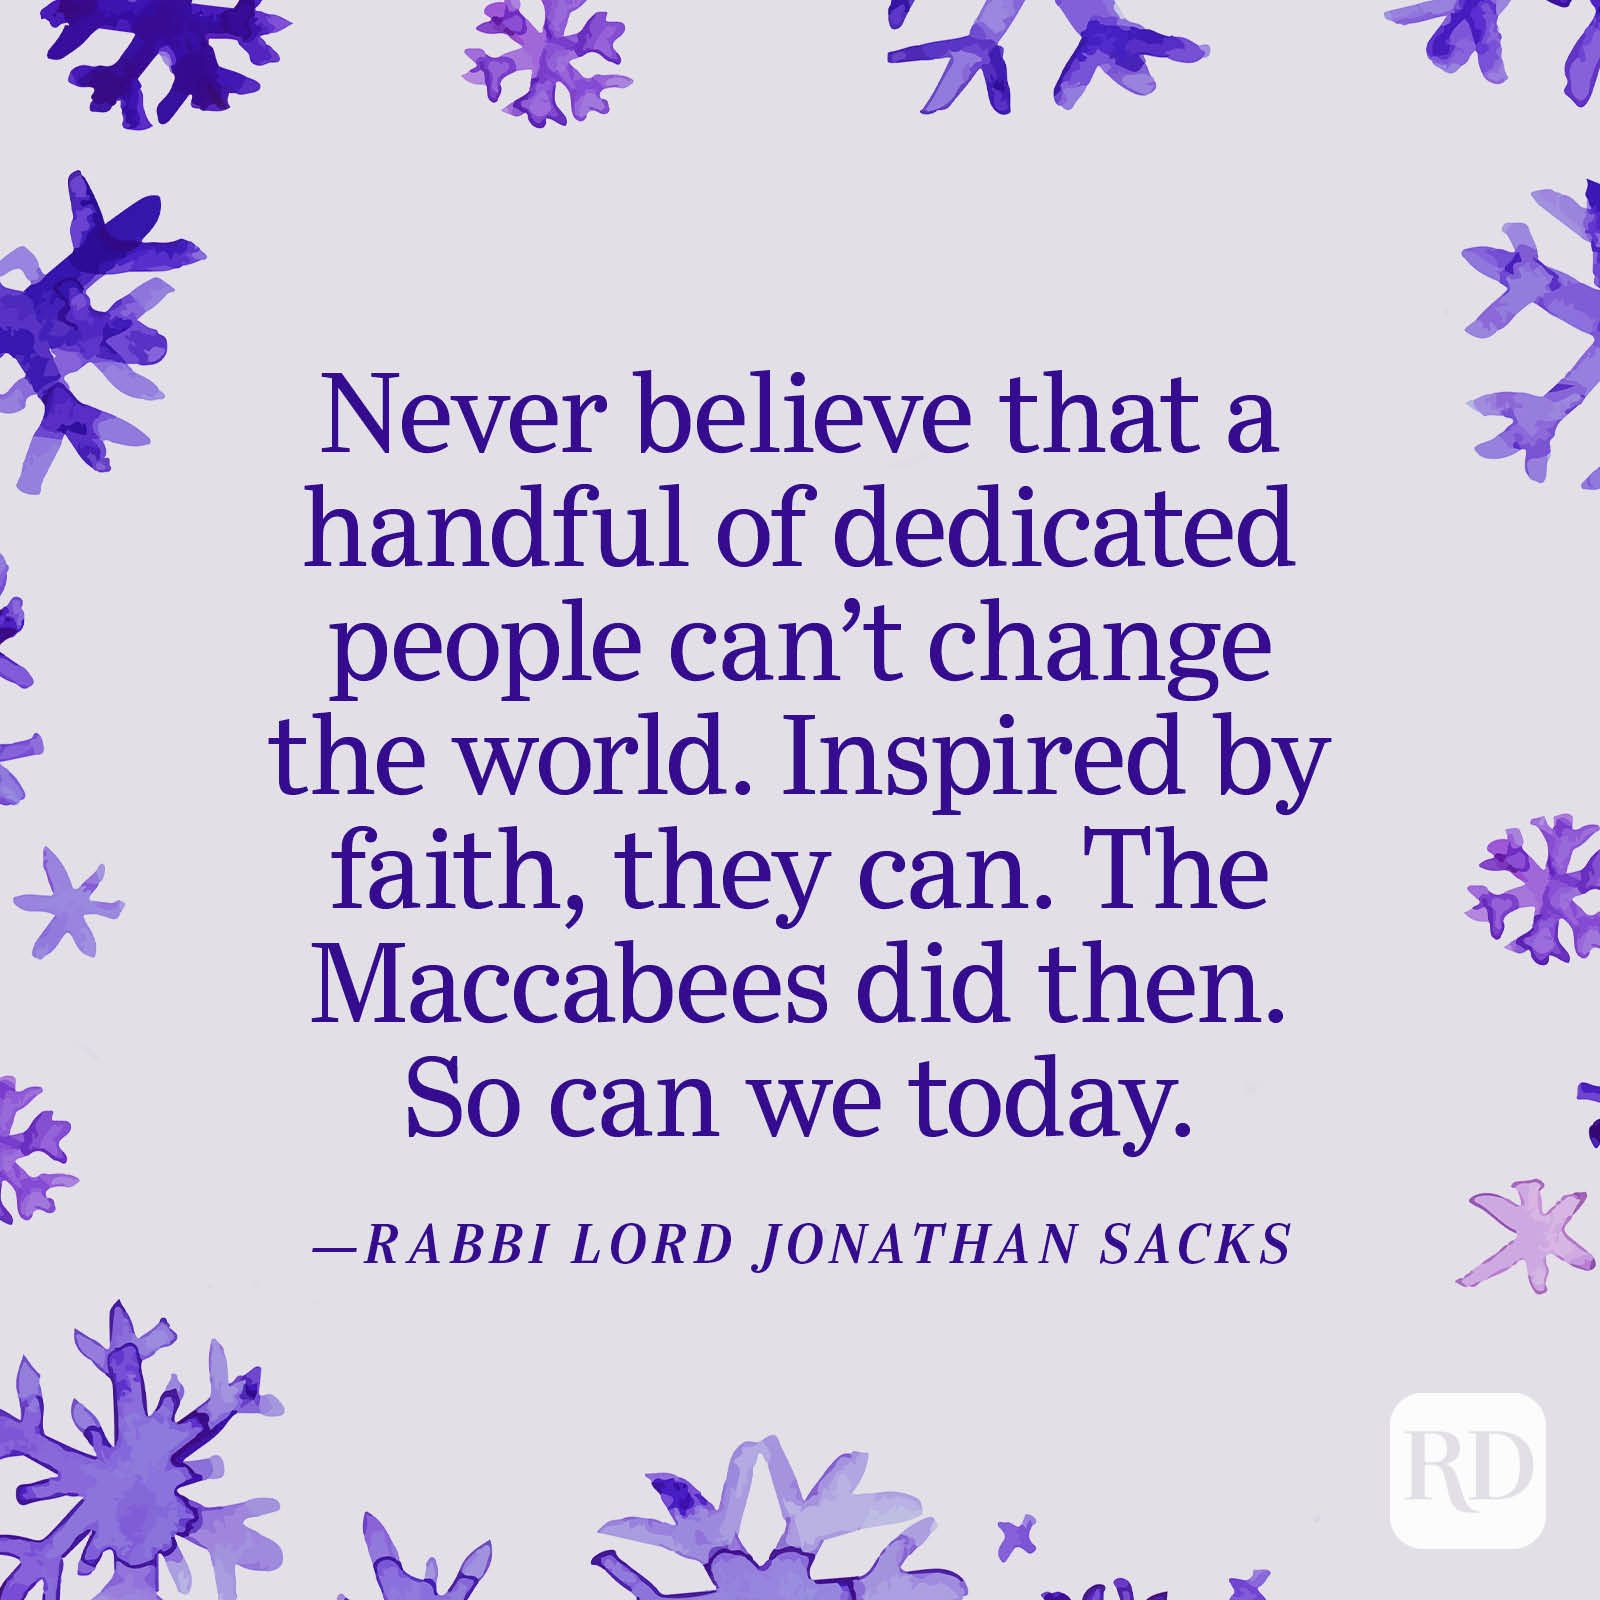 """""""Never believe that a handful of dedicated people can't change the world. Inspired by faith, they can. The Maccabees did then. So can we today."""" —Rabbi Lord Jonathan Sacks"""